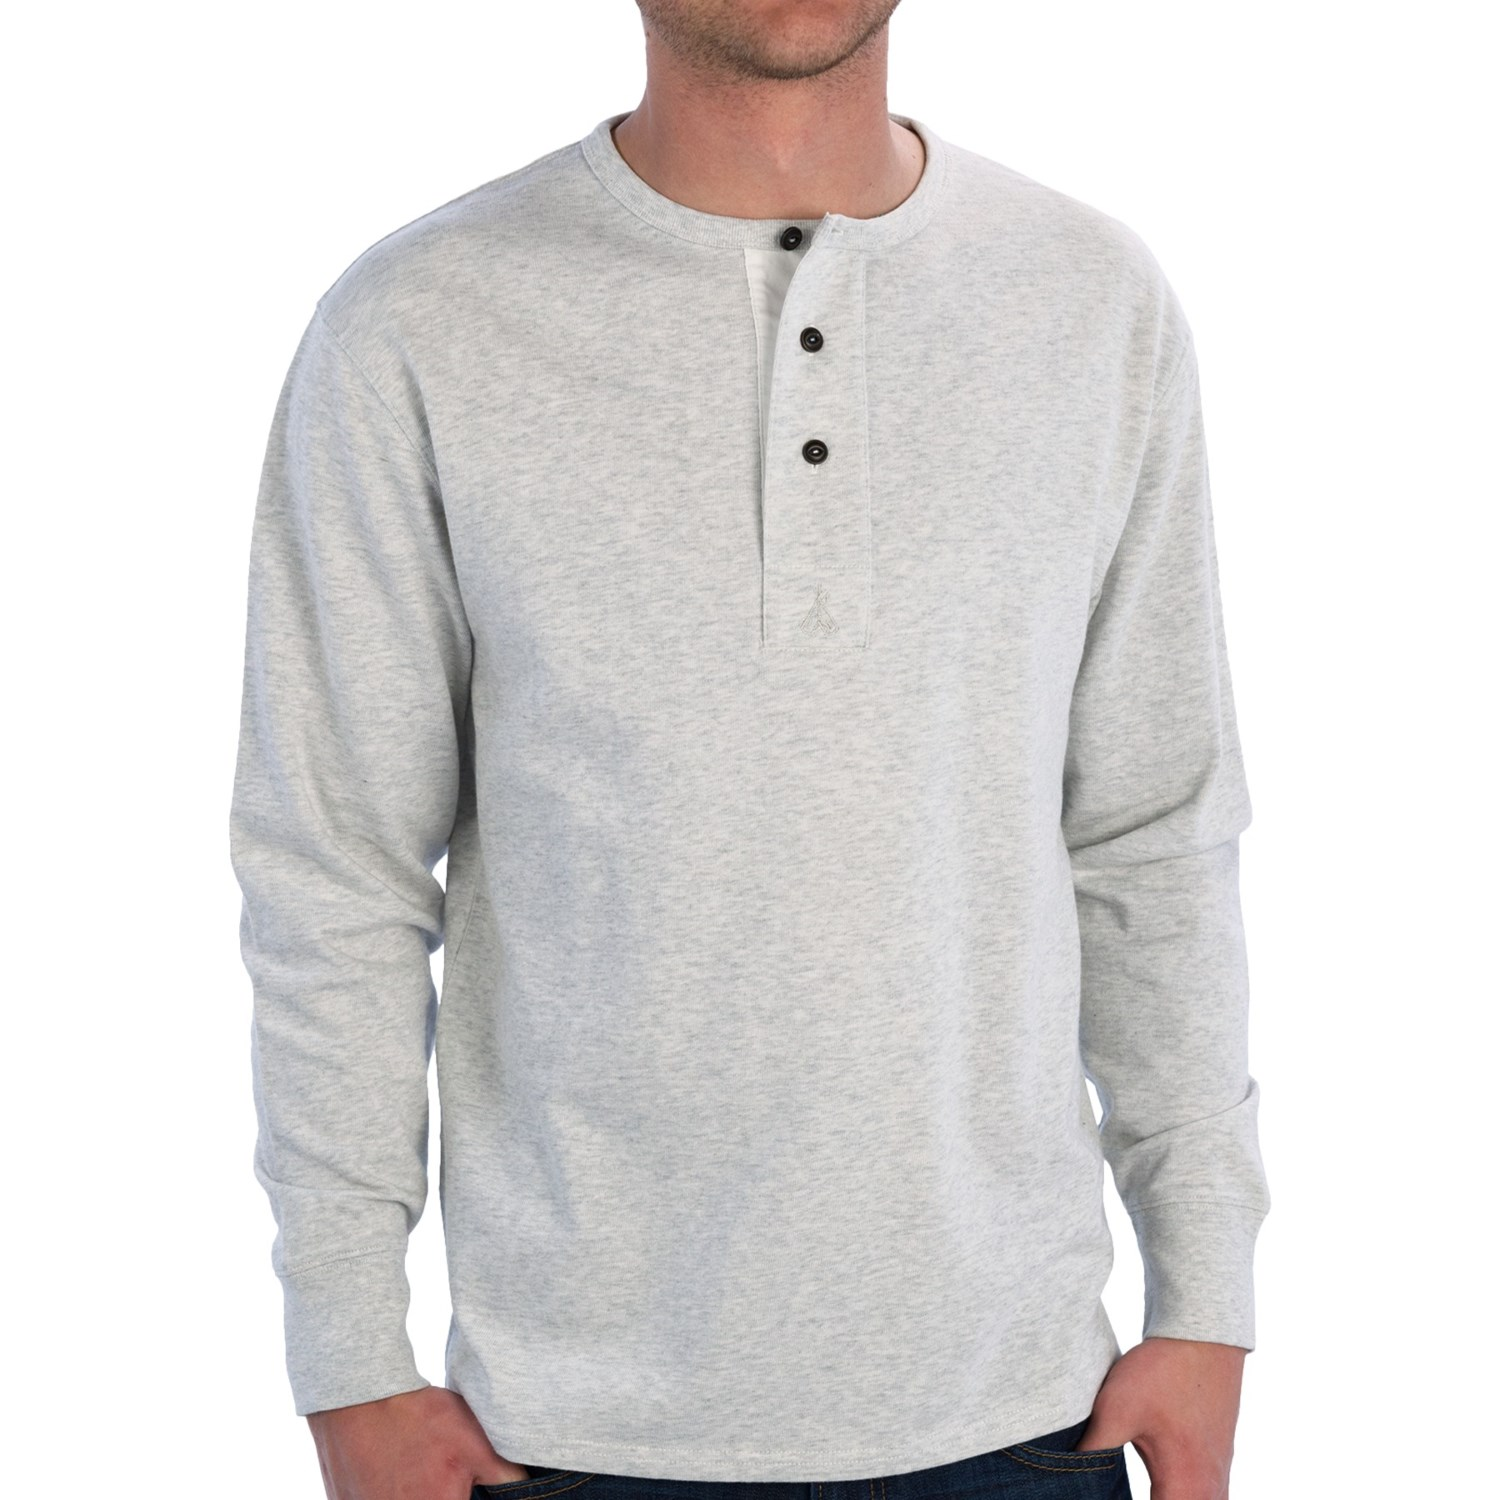 Stay warm with a Long Sleeve Henley, Men's Long Sleeve Henley, Women's Long Sleeve Henley and Juniors Long Sleeve Henley from Macy's. Macy's Presents: The Edit- A curated mix of fashion and inspiration Check It Out. Free People Love This Cotton Henley Shirt.